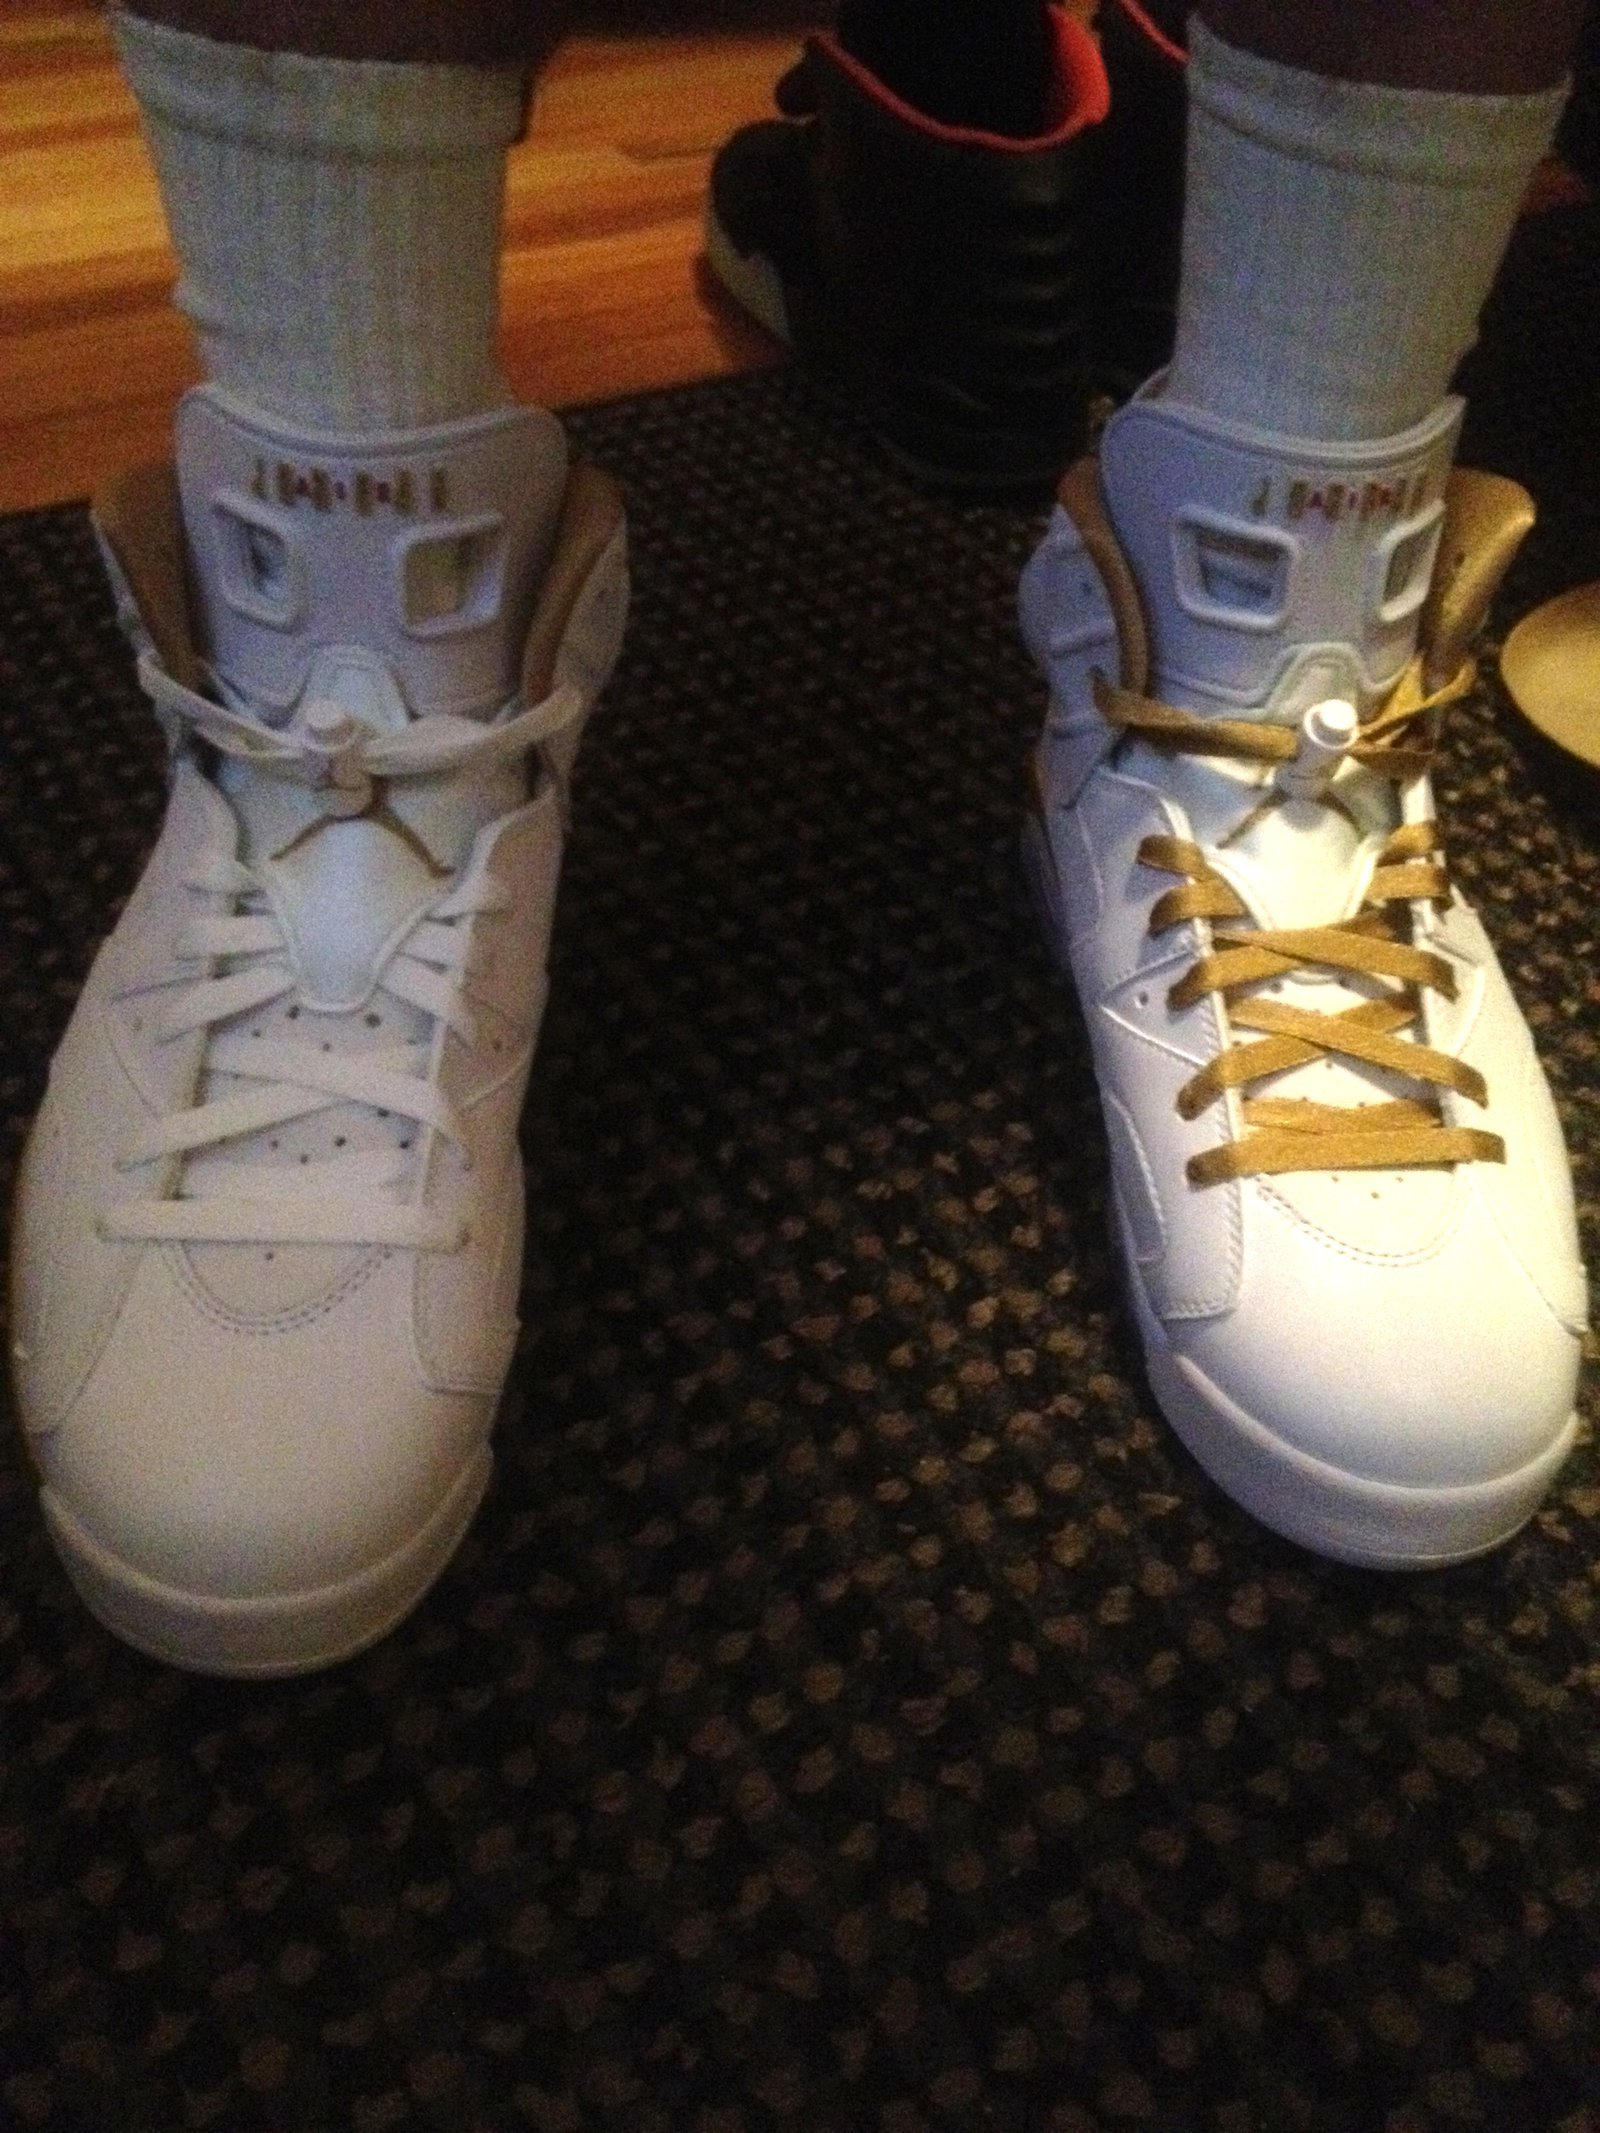 white or gold laces?